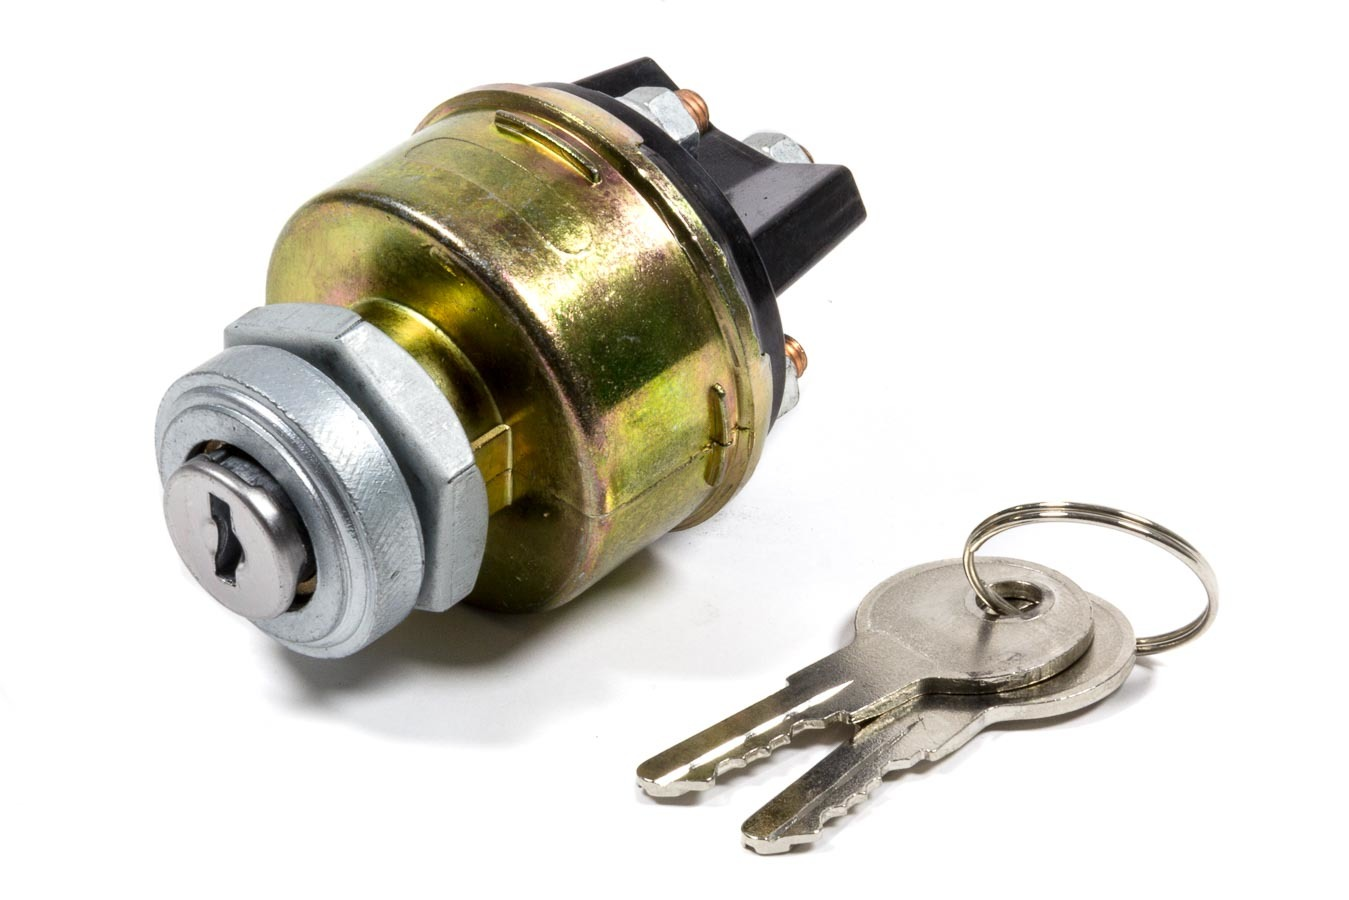 Ignition Switch w/Coded Keys